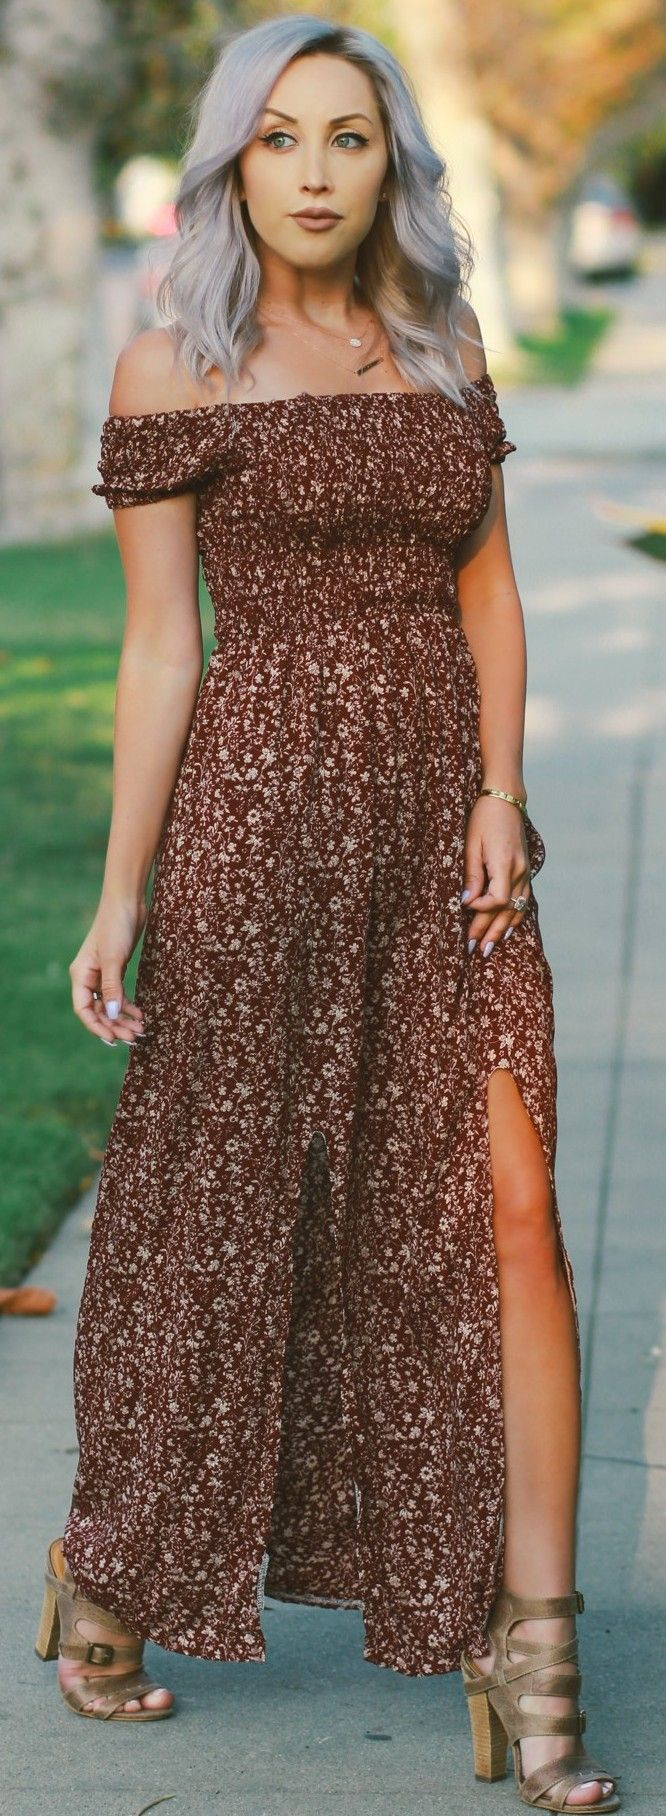 #fall #street #style | Fall Floral Off The Shoulder Maxi Dress + Silver Hair